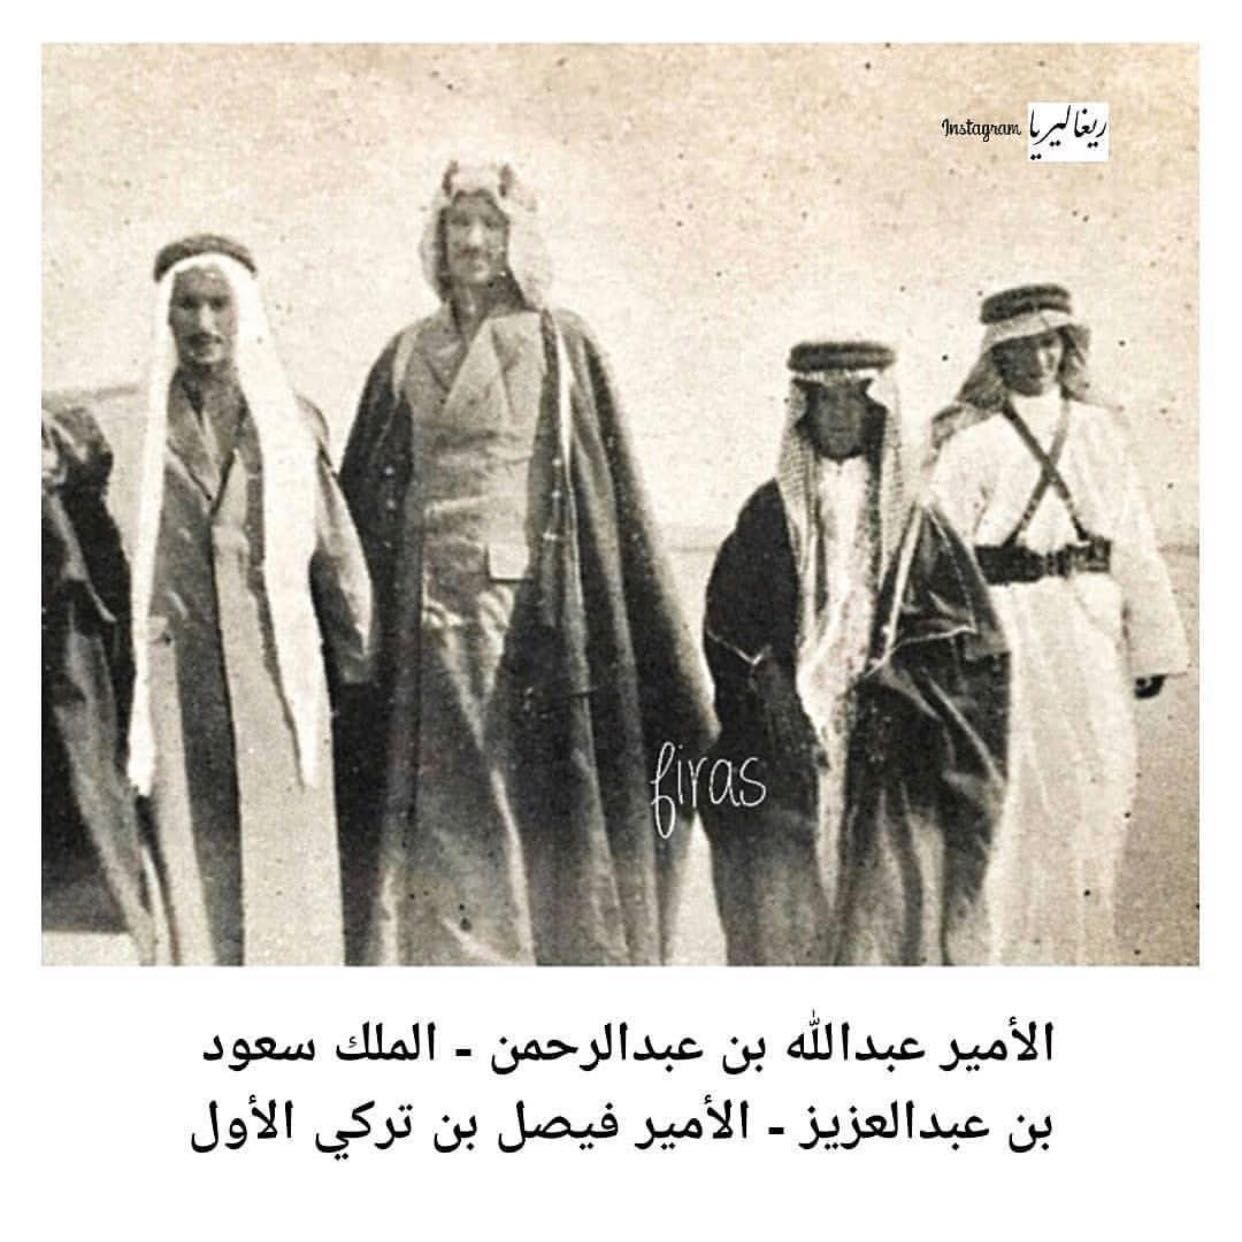 Pin By Jiji On King Saud Ben Abdulaziz Old Photos King Queen Old Pictures